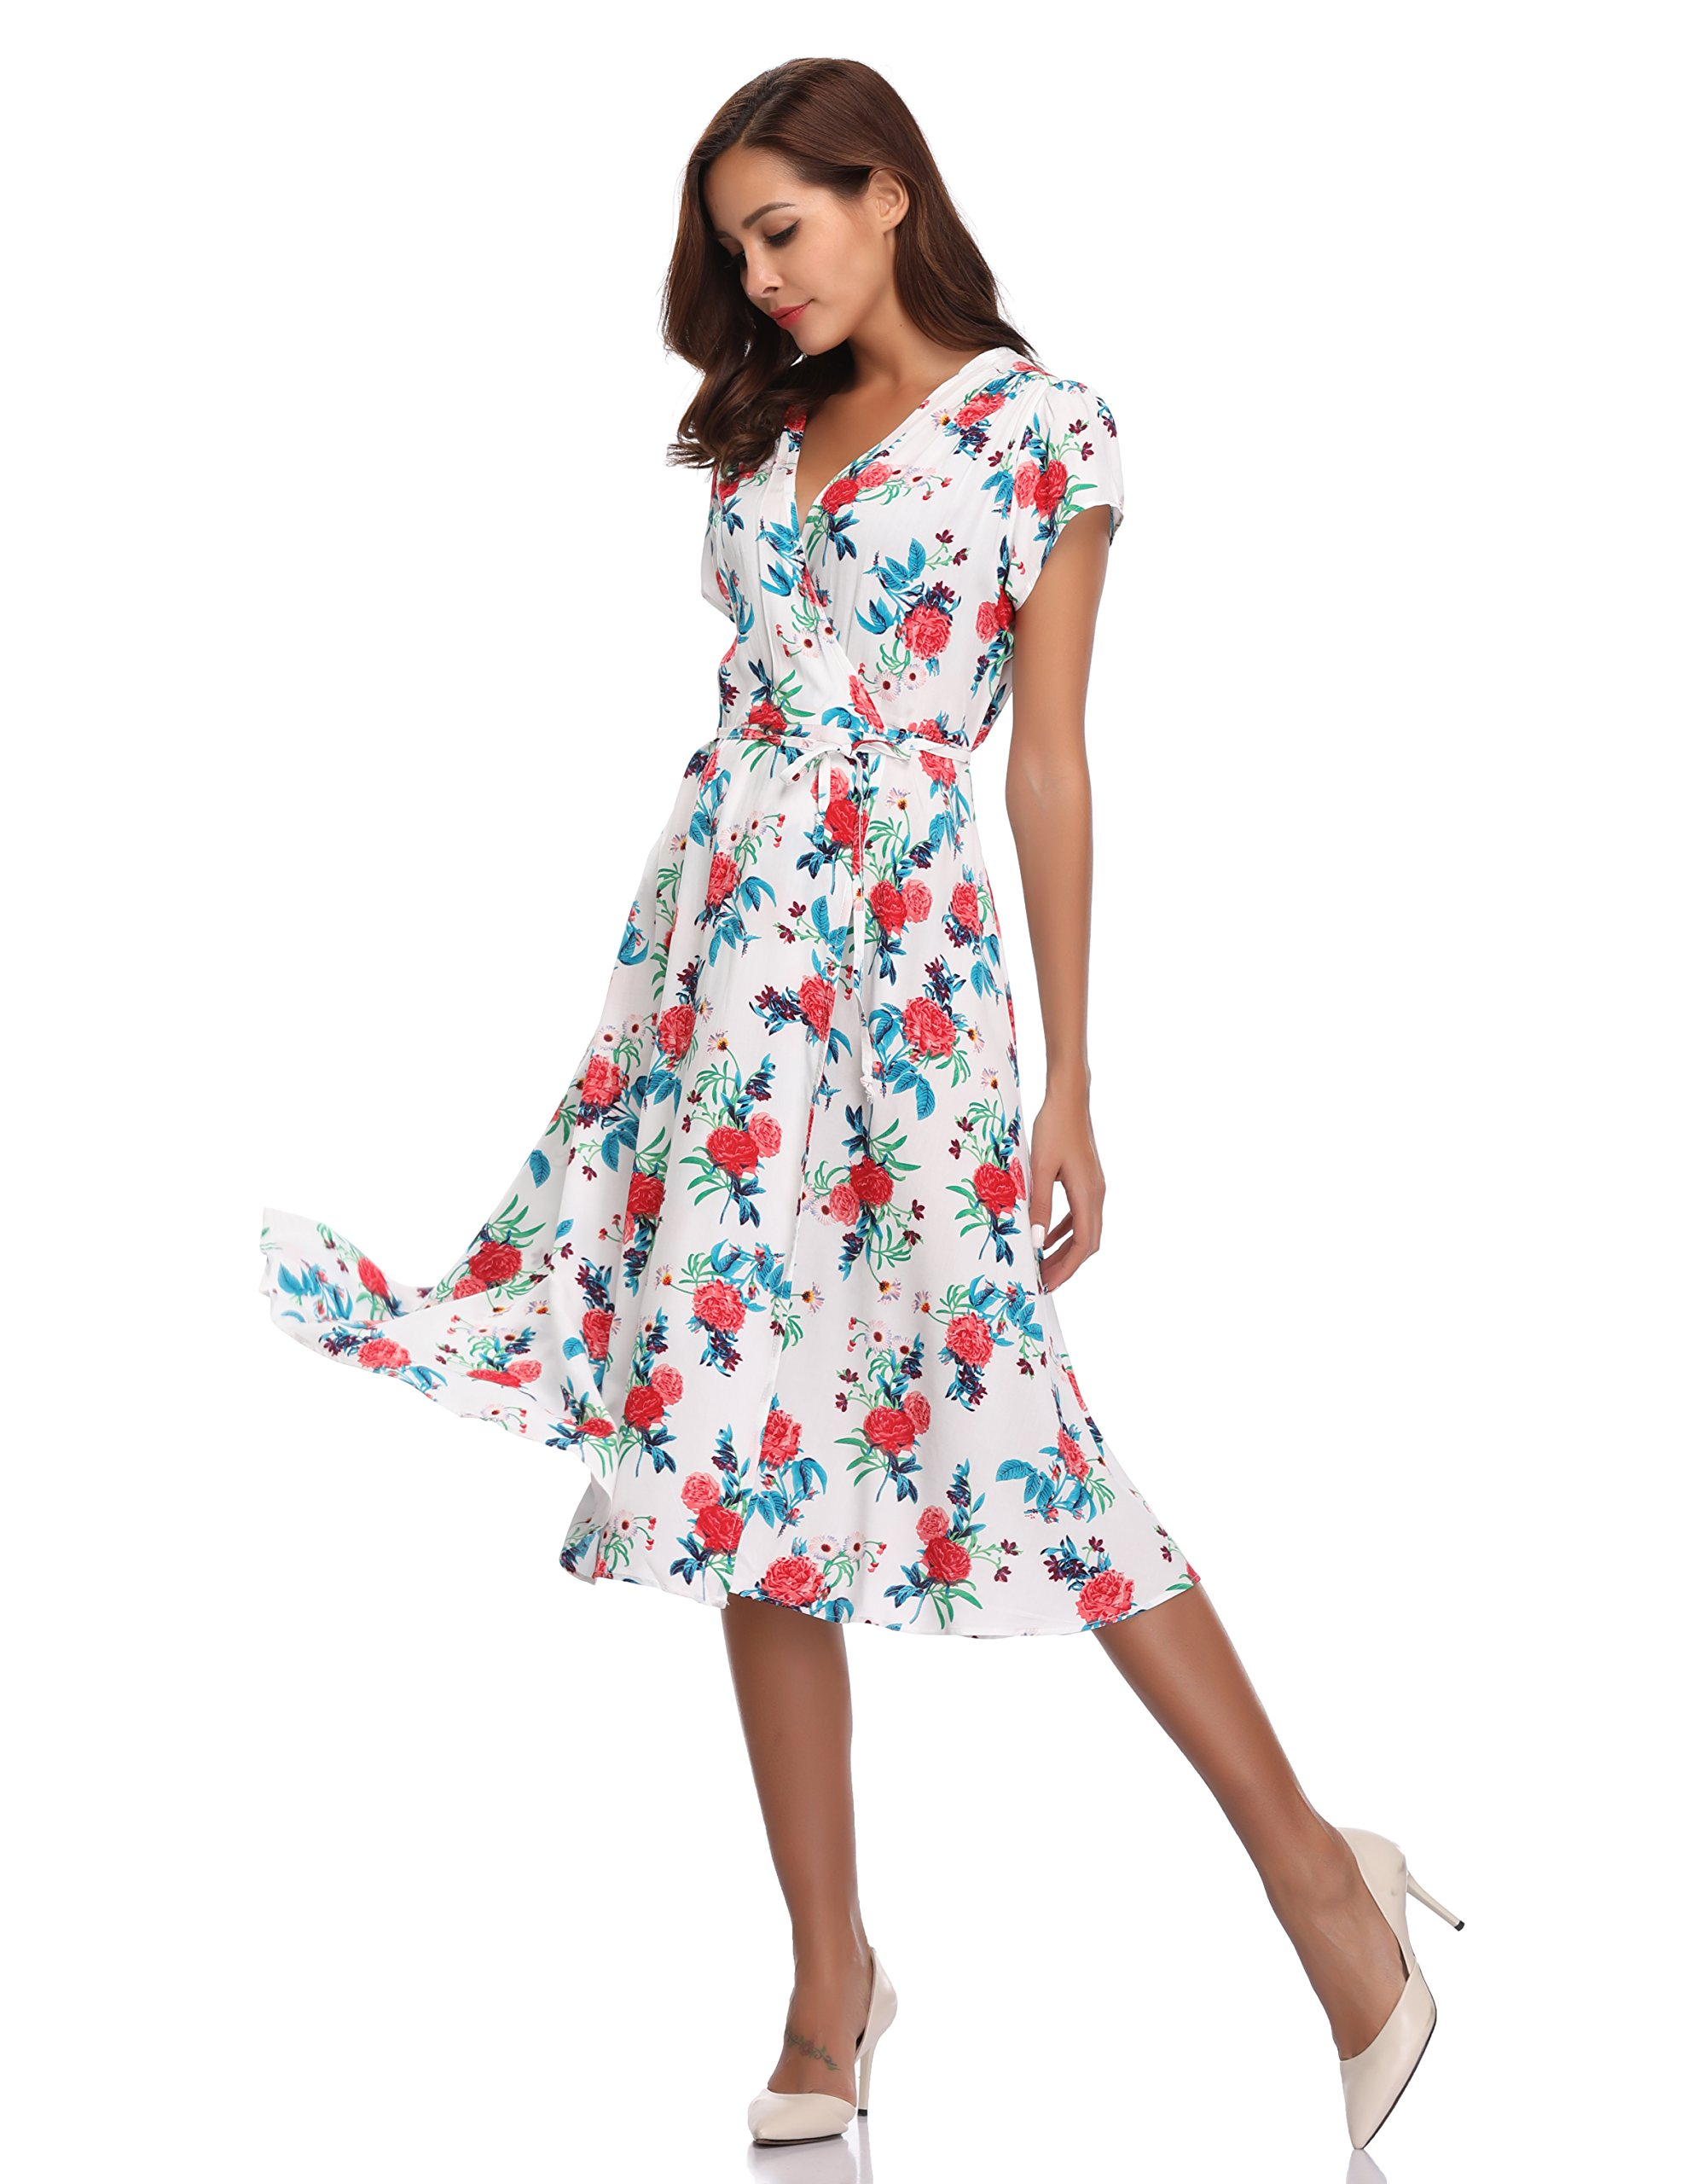 Floating Time Women's Floral Print Short Sleeve Midi Wrap Dress(S, CF42583-3) by Floating Time (Image #2)